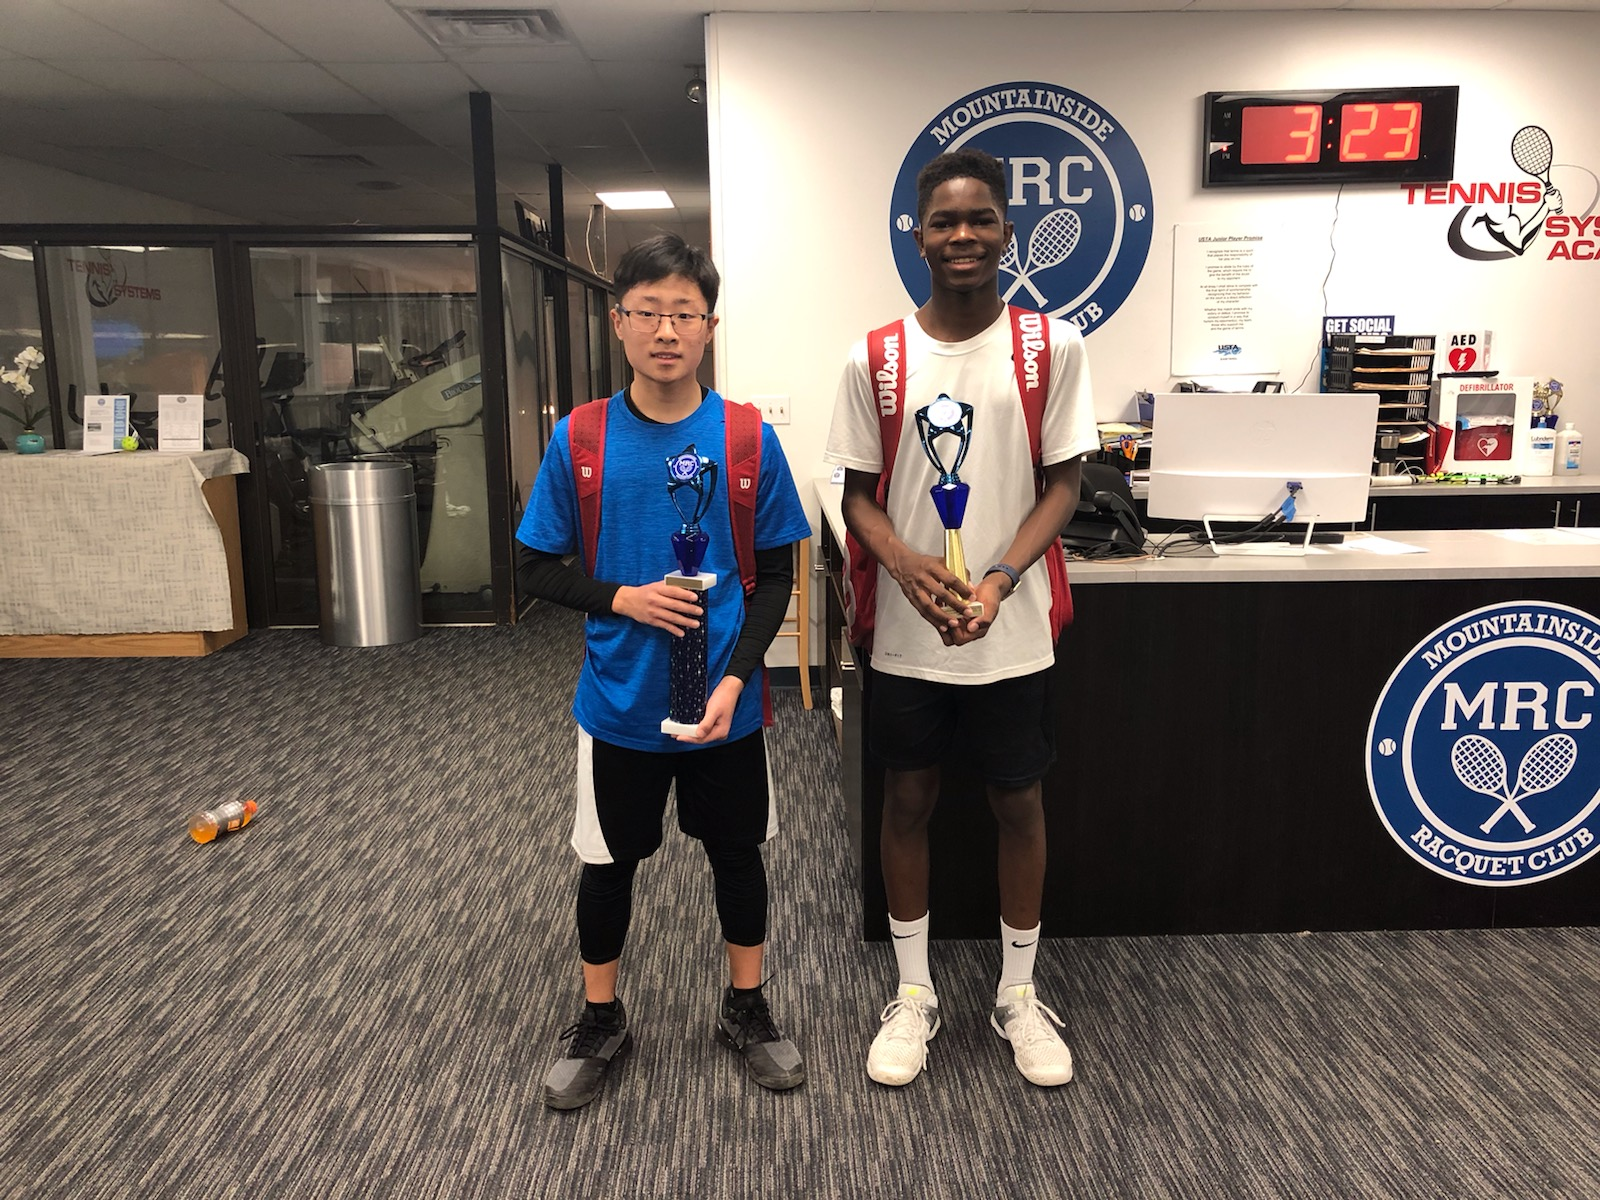 Jacob Rha. Boys 14s Champion. Mountainside Racquet Club March Classic. March 2019.